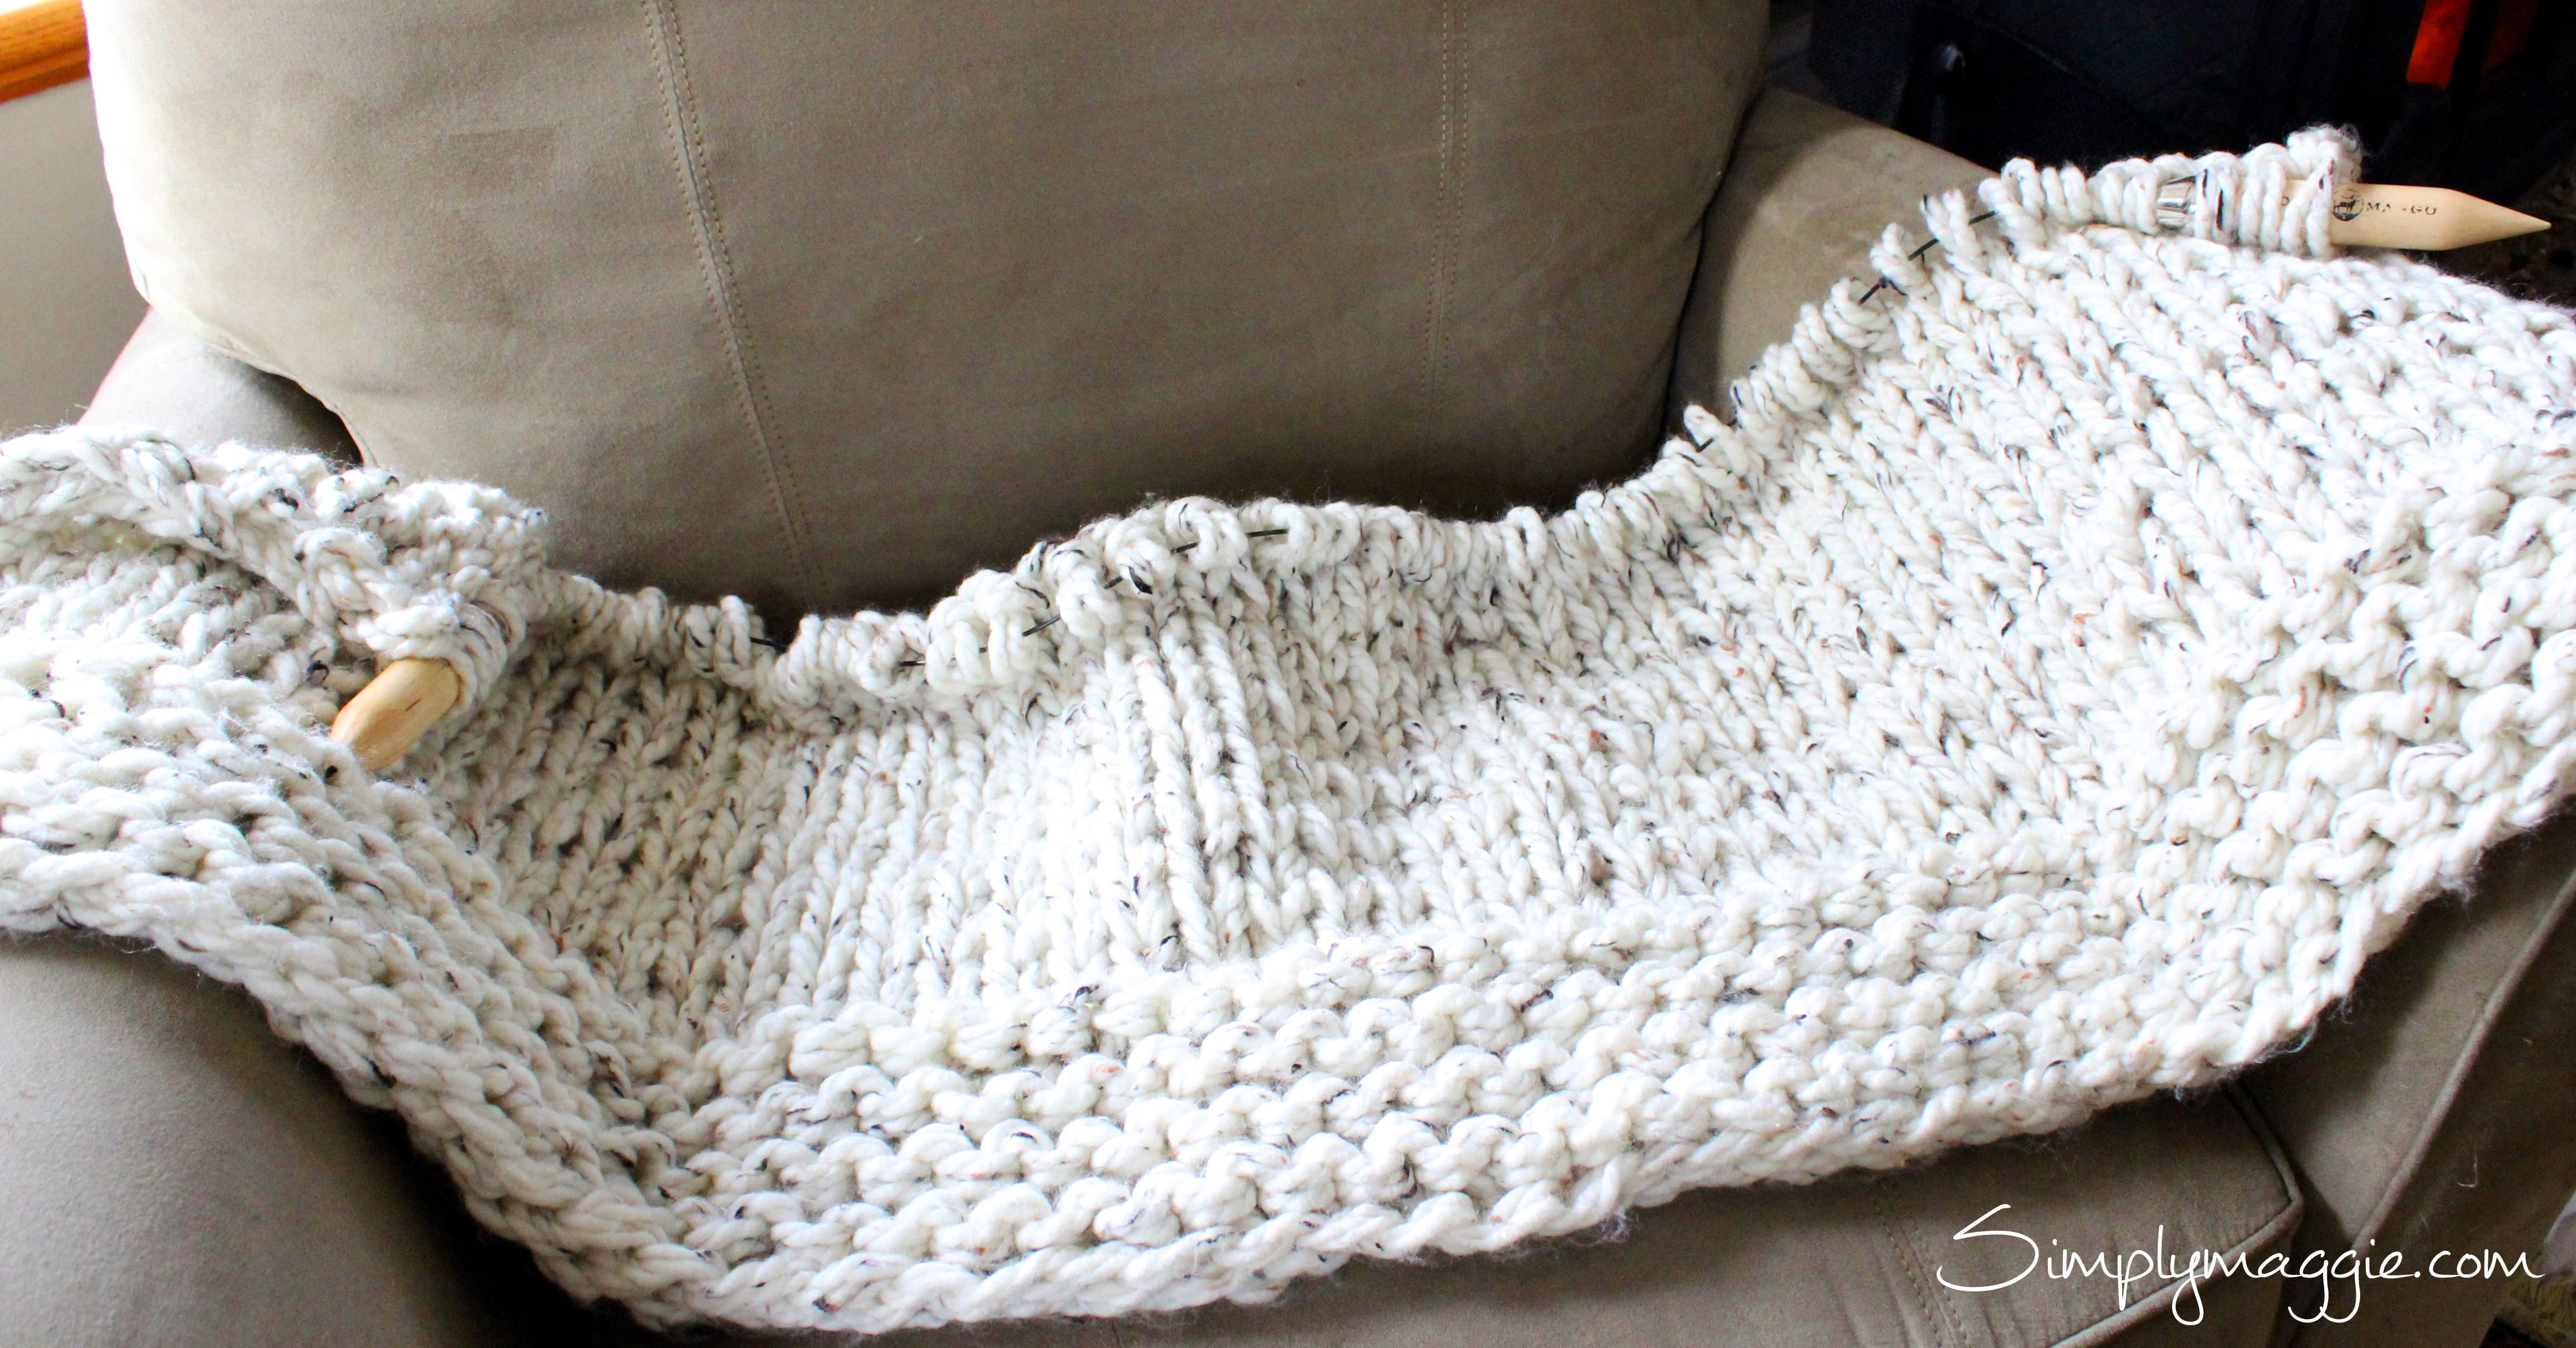 Knit Blanket Pattern Lush Knit Blanket Simply Maggie Simplymaggie